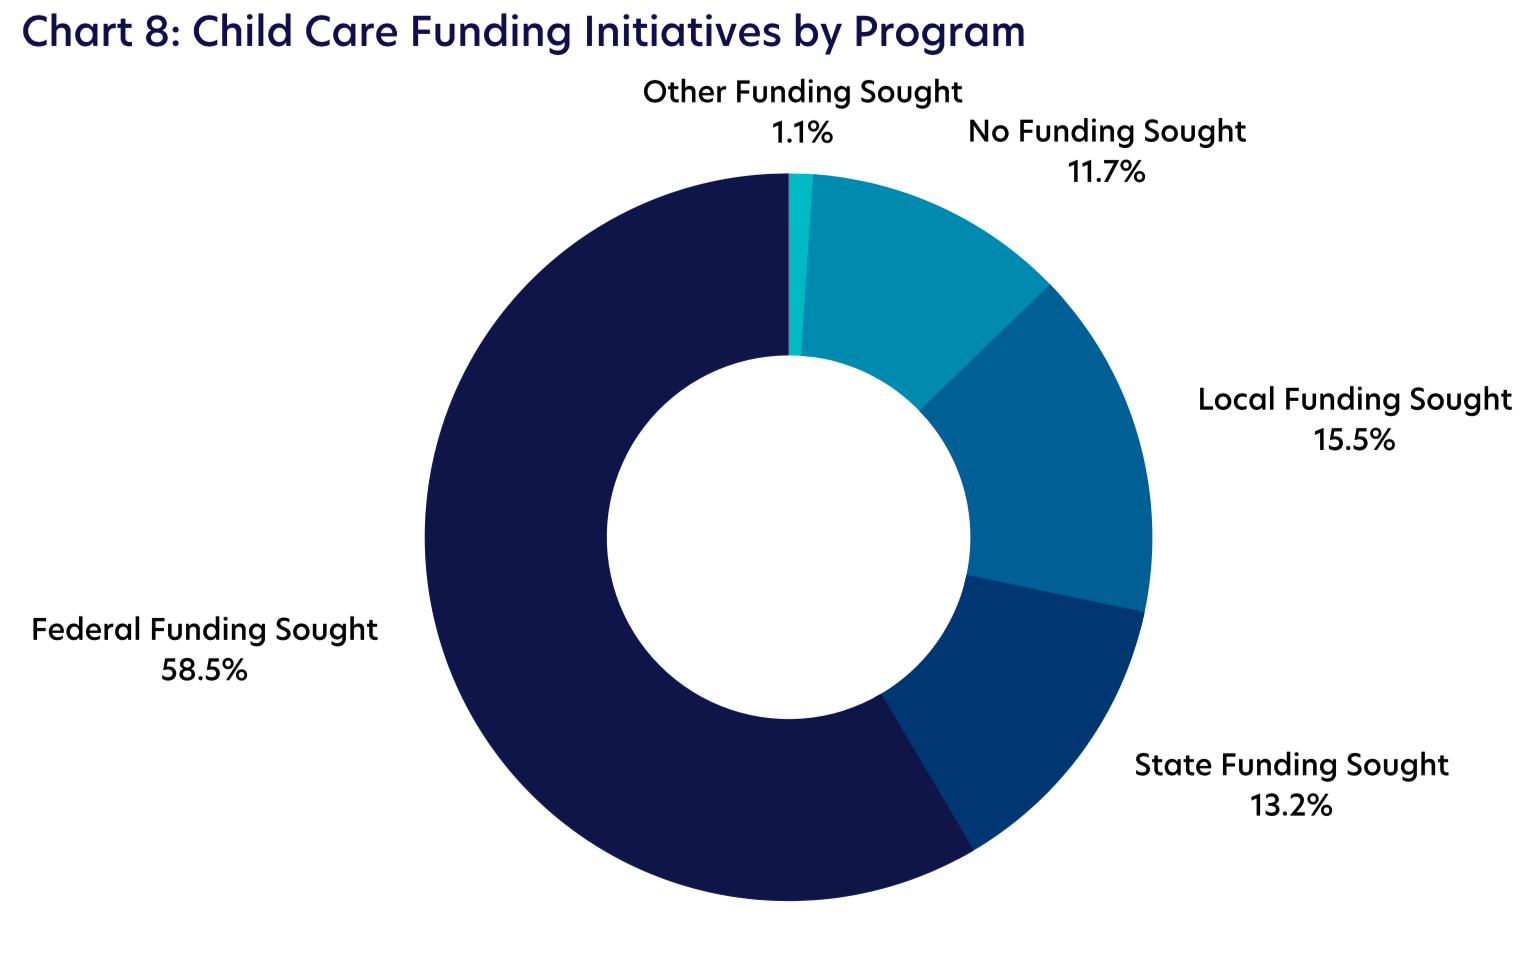 Chart 8: Child Care Funding Initiatives by Program